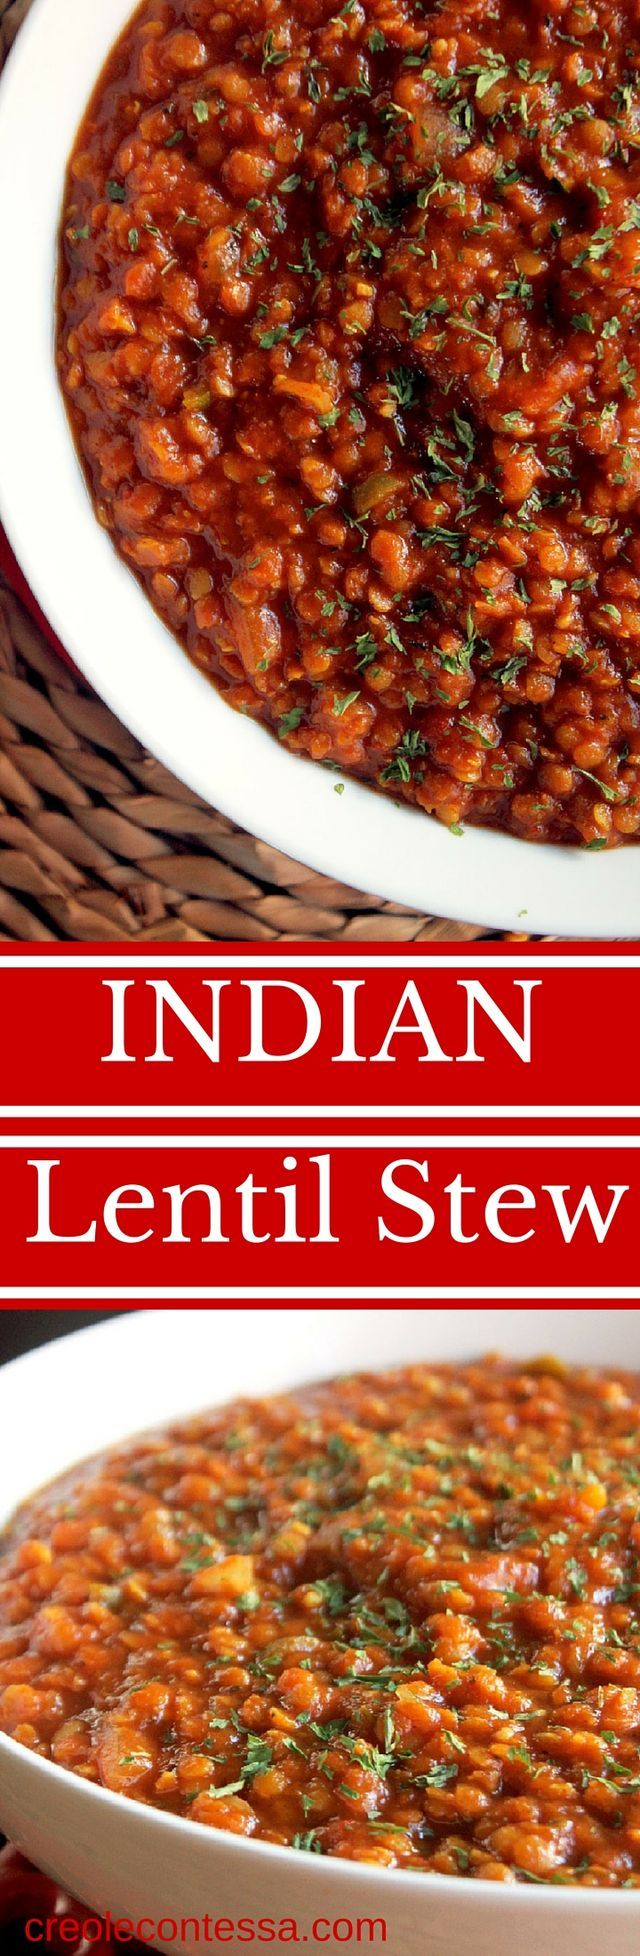 I'm super excited about today's Slow Cooker meal! Being a certified Indian Food Addict I am so happy to share one of my favorite Indian recipes! Slow Cooker Indian Lentil Stew or Dal as it's called at